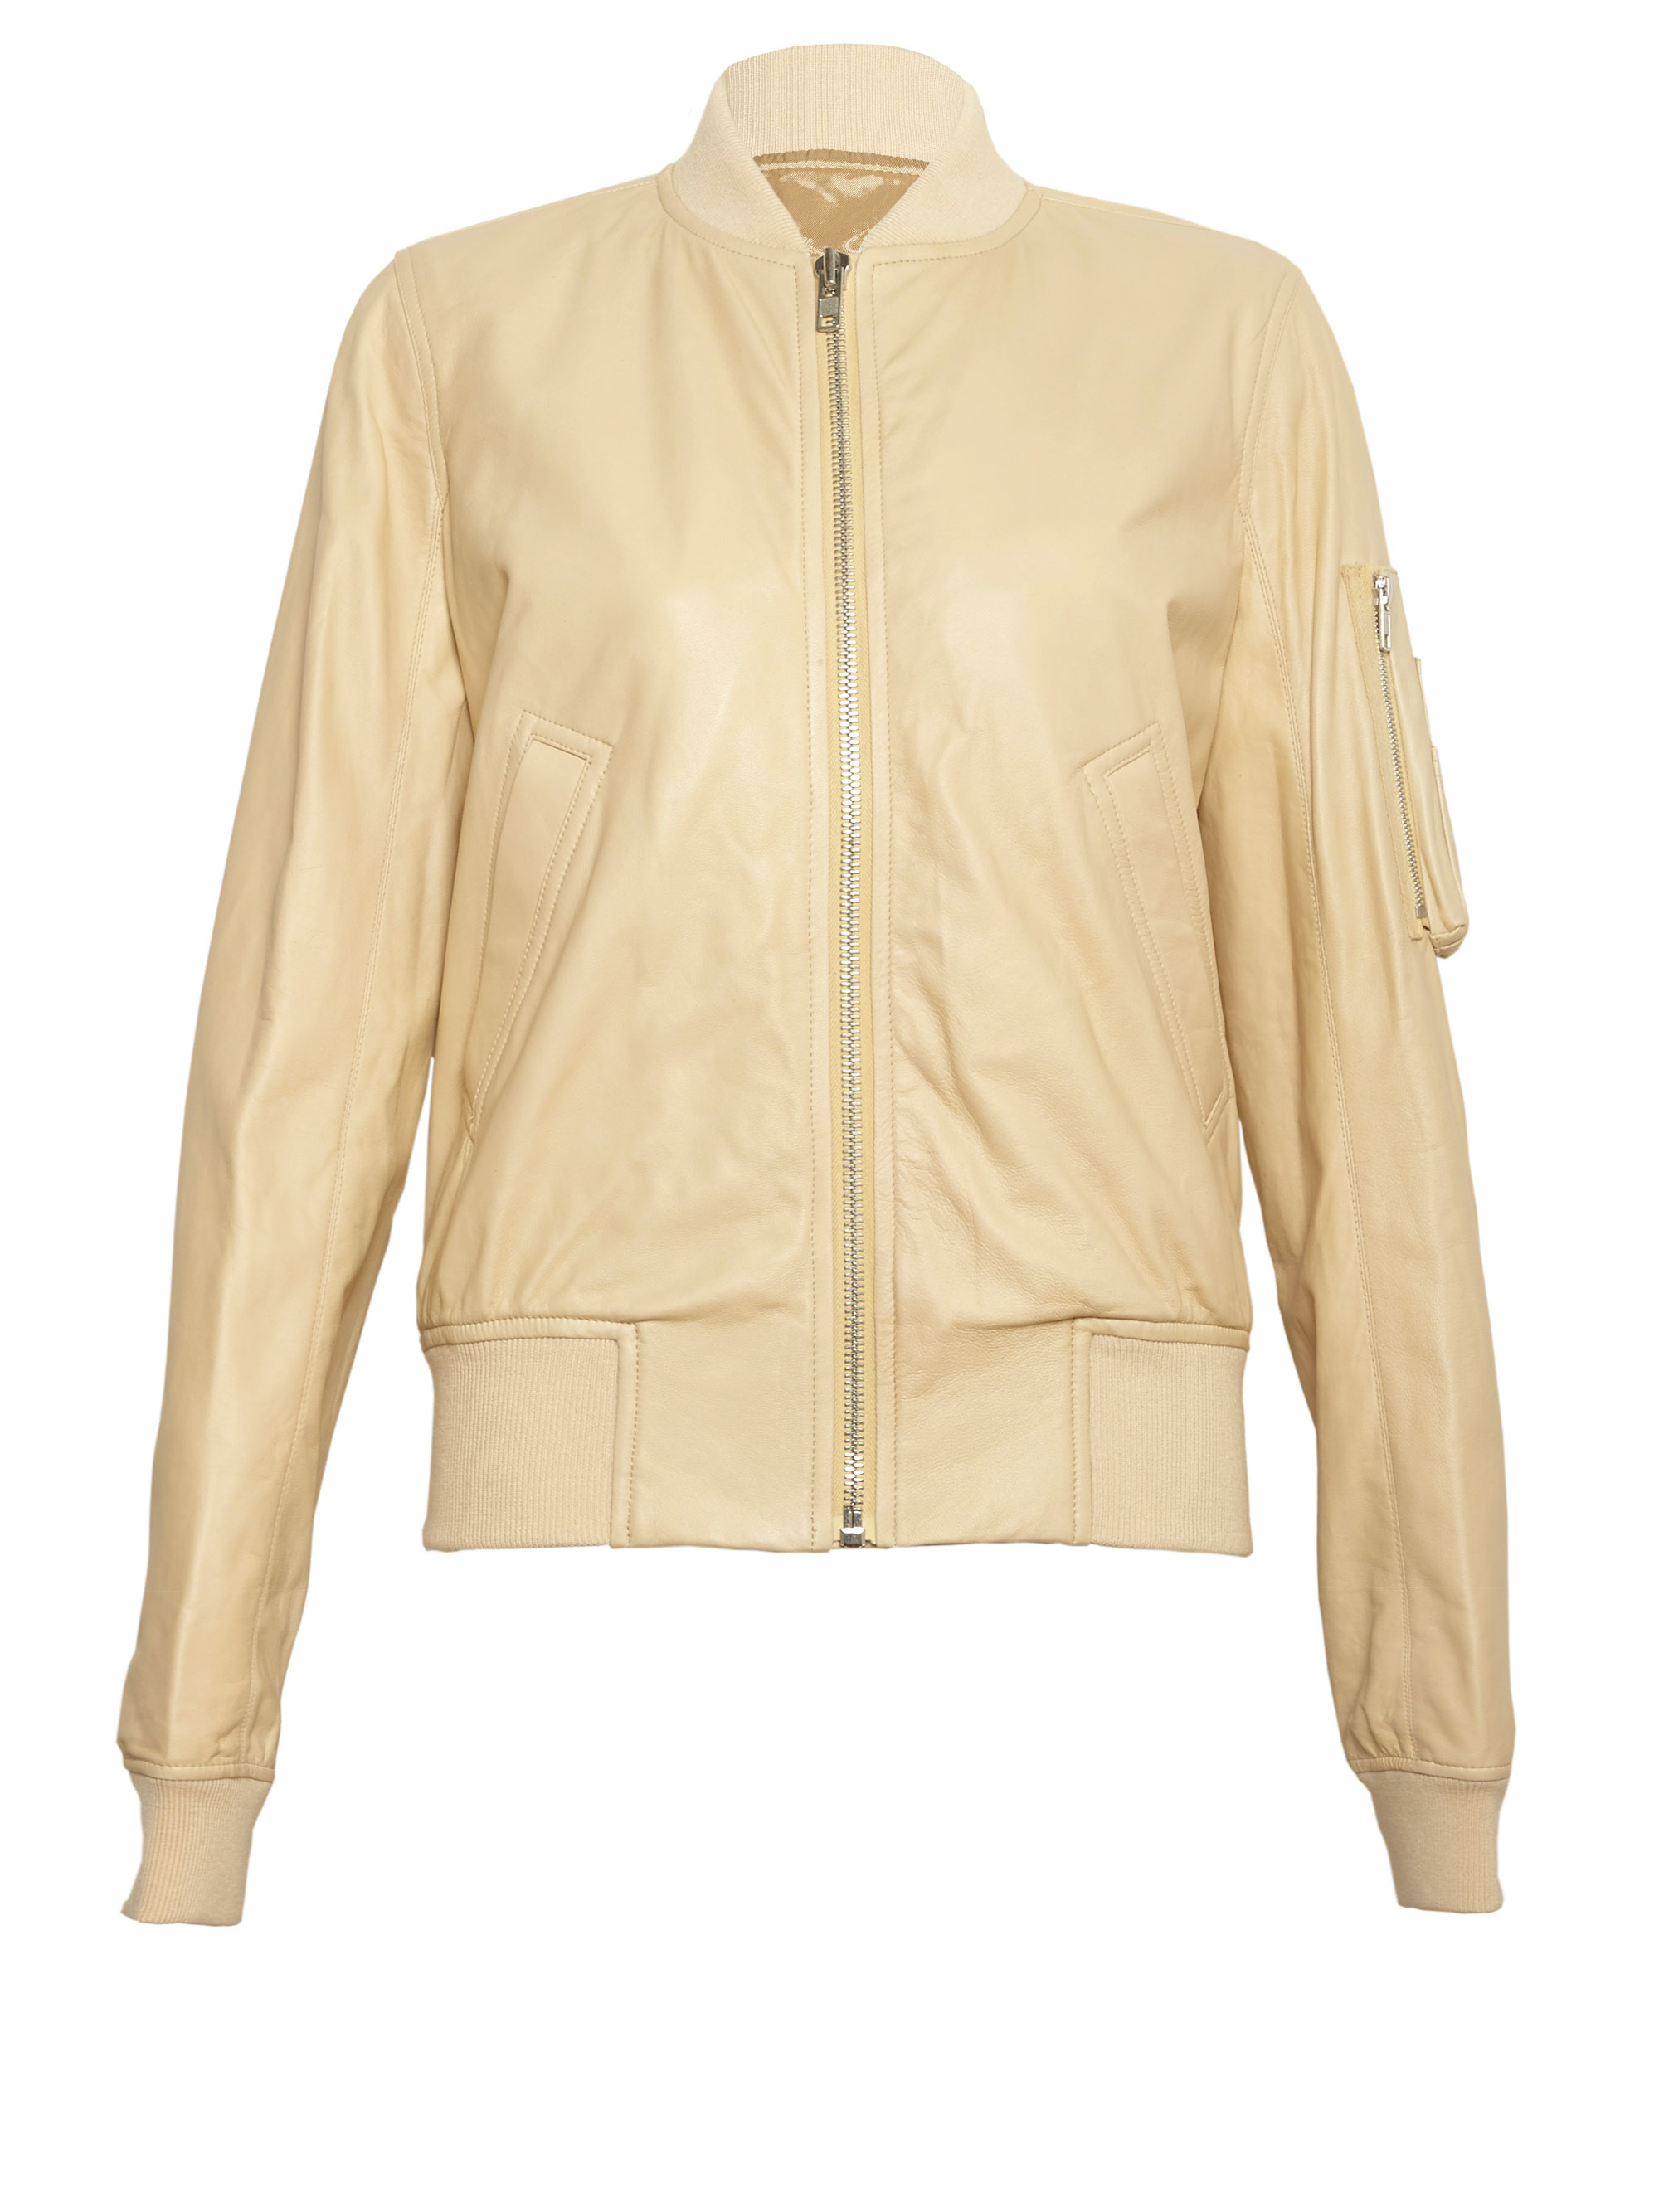 H M Leather Jacket Womens